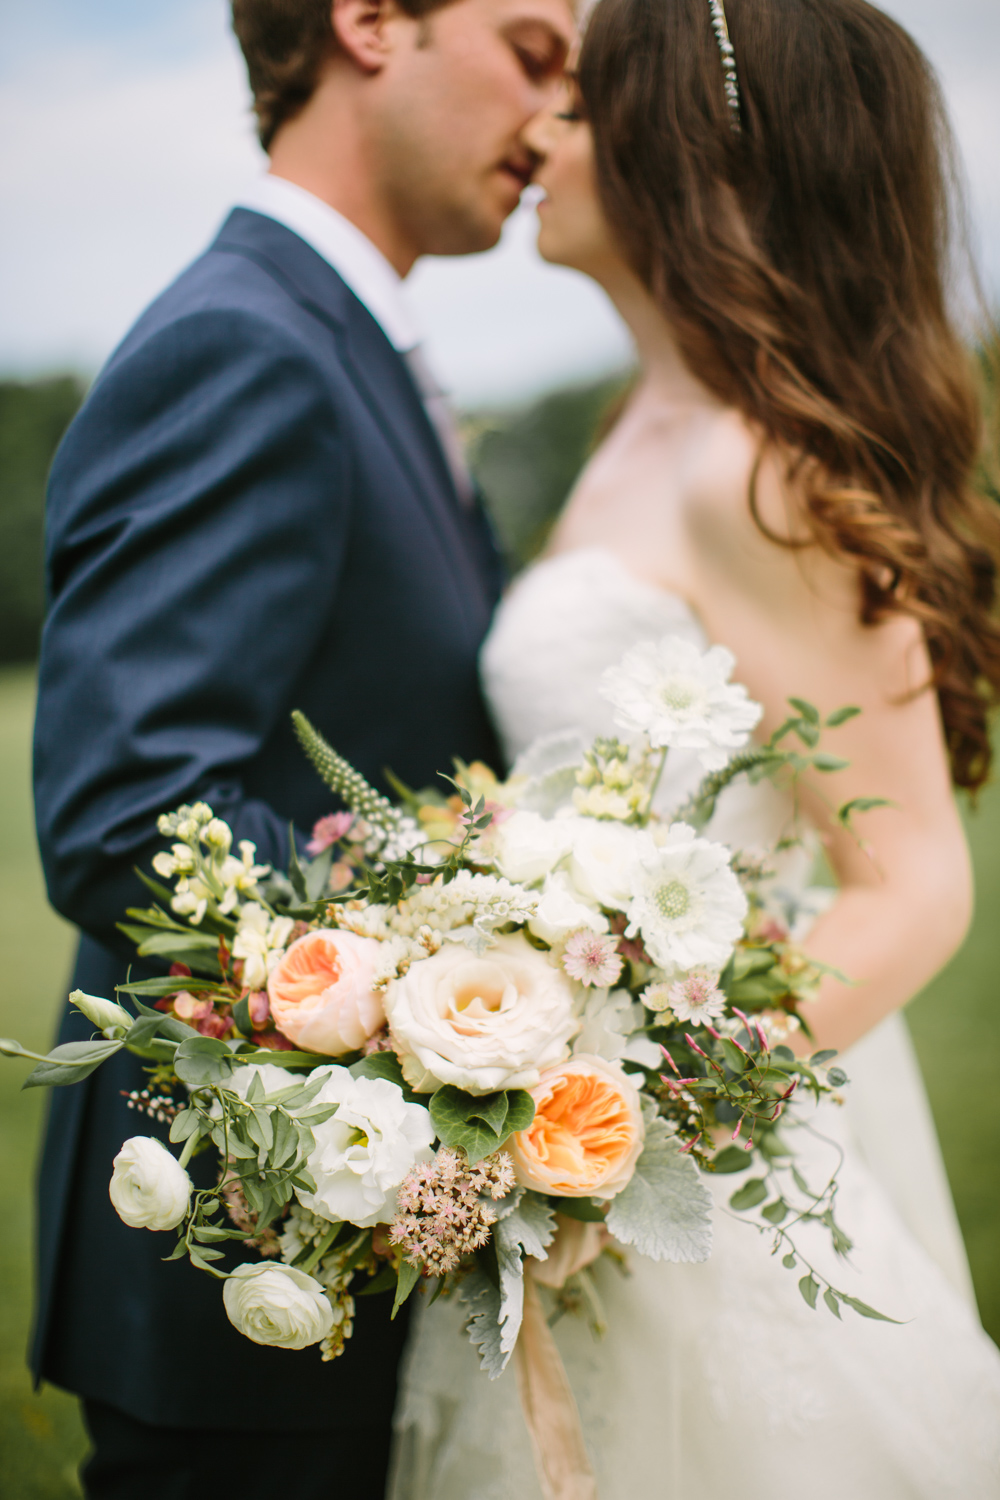 Peach and cream floral bouquet